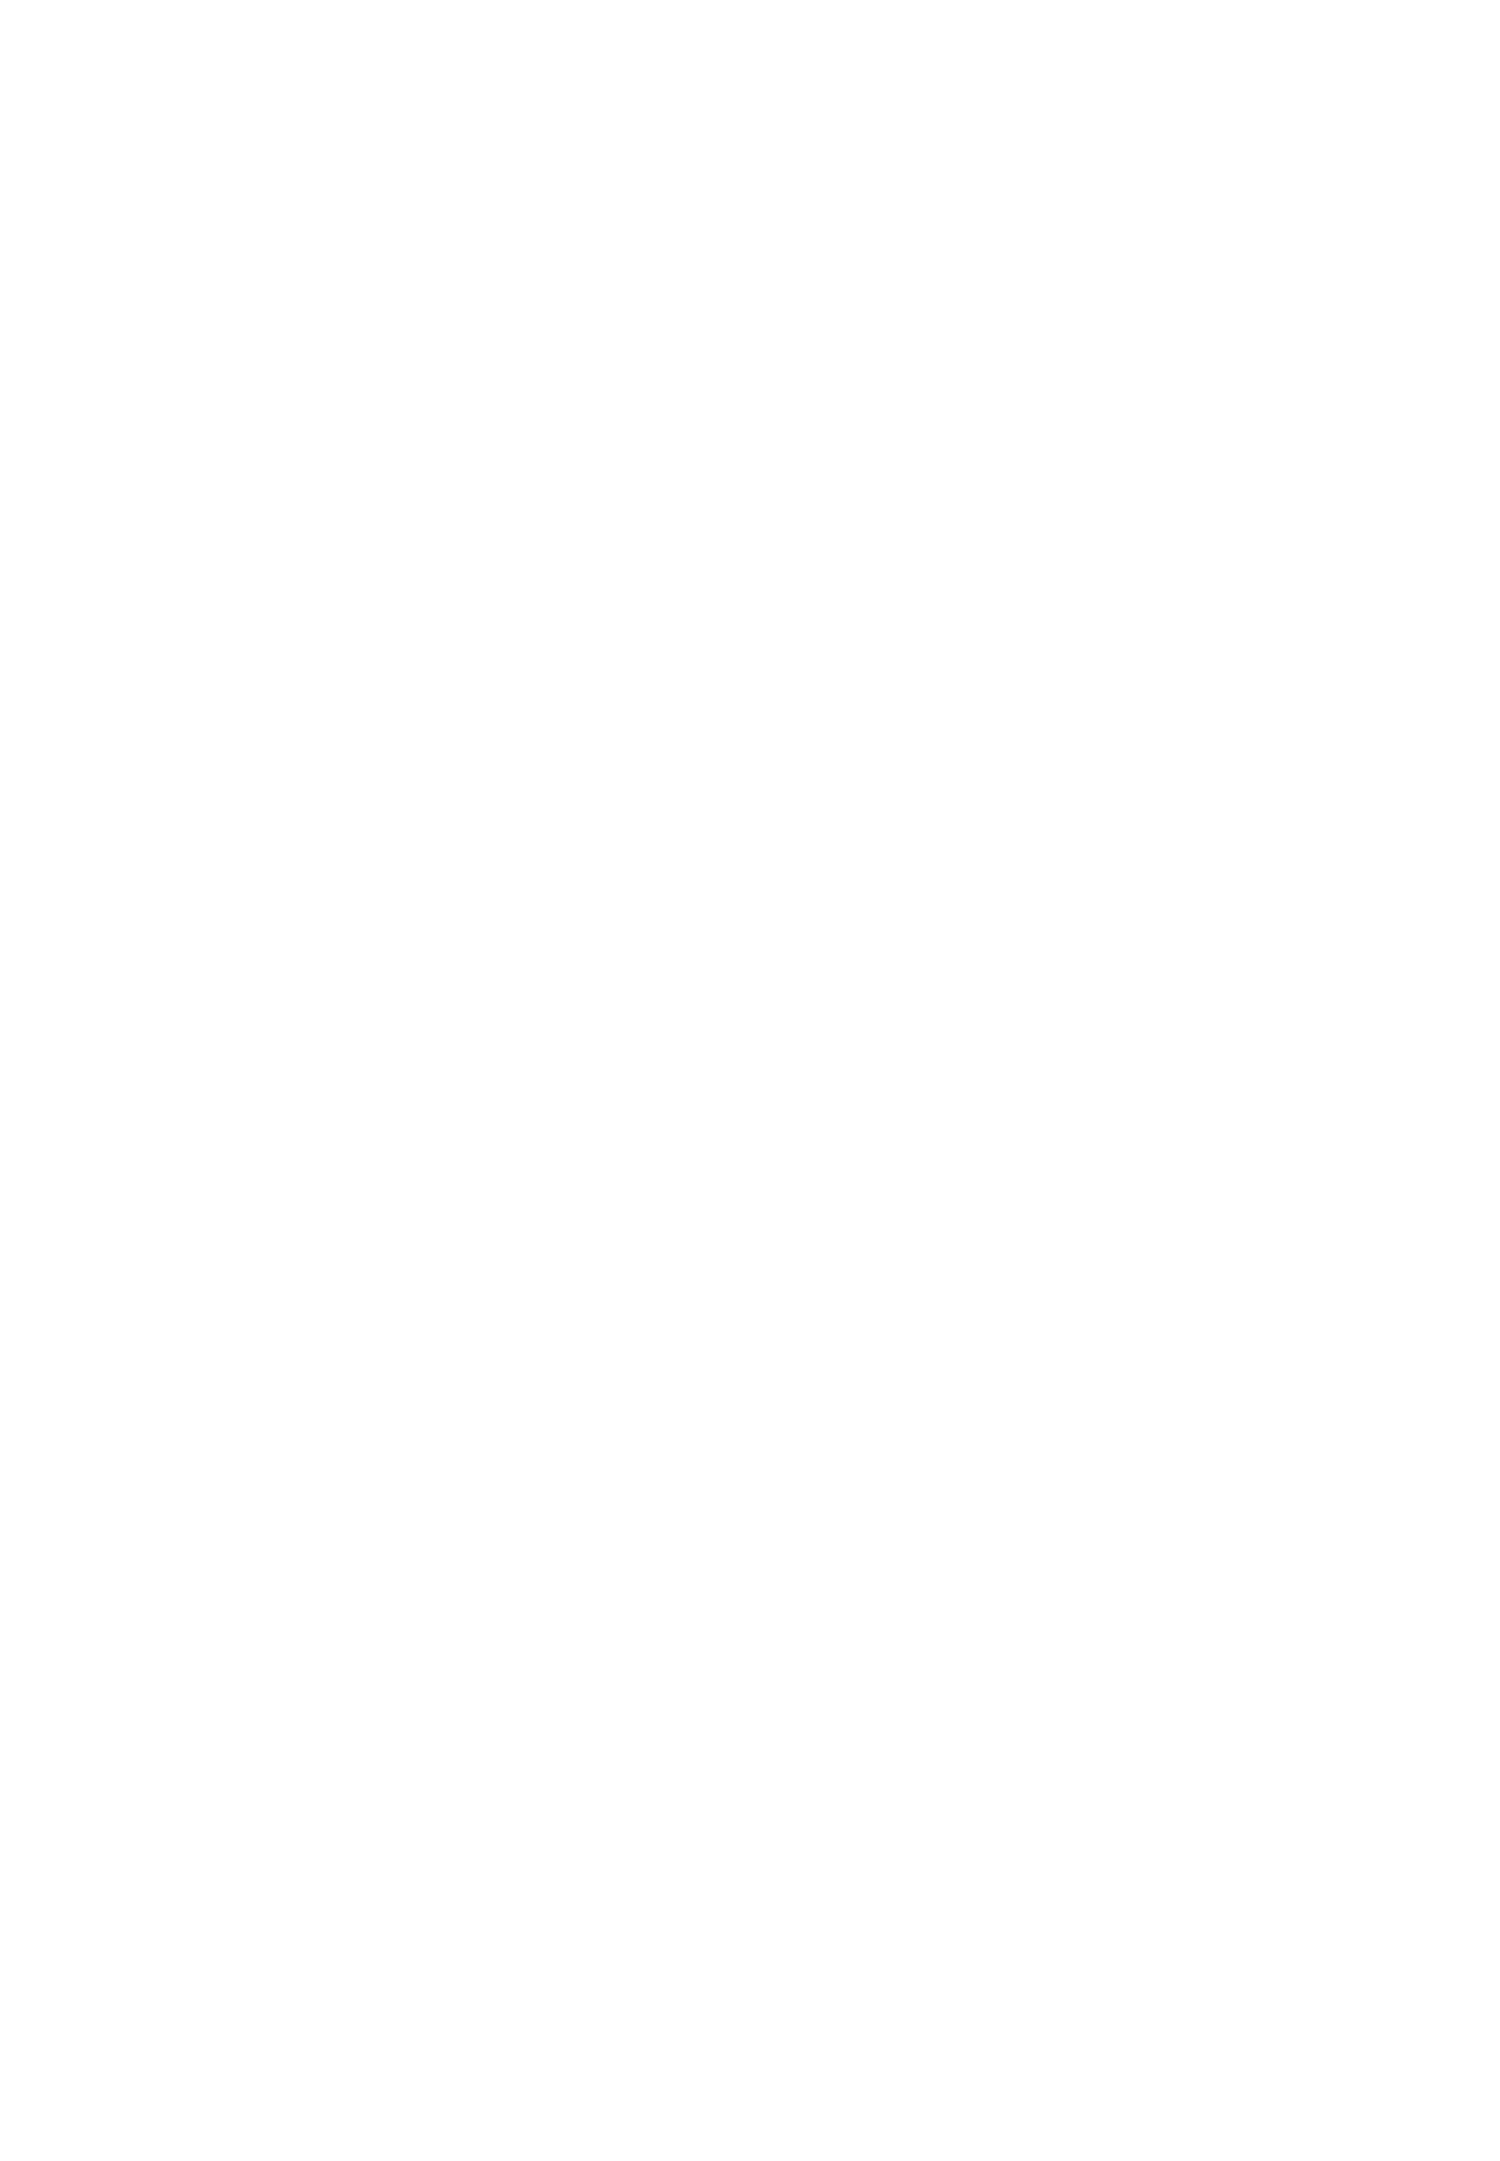 Shiraz Pointe Subdivision